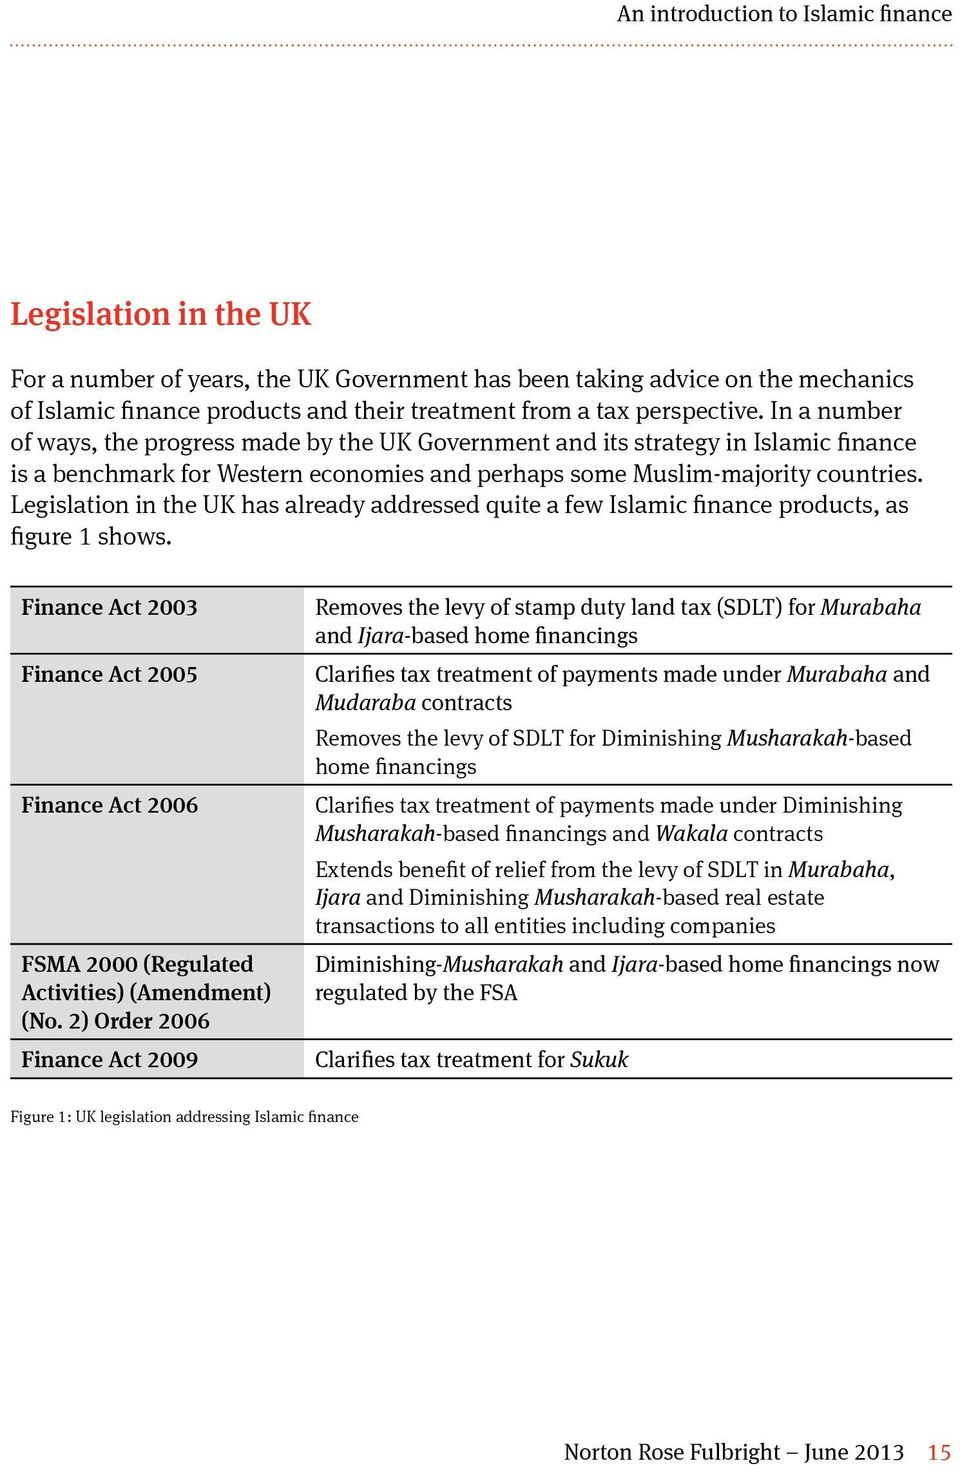 Legislation in the UK has already addressed quite a few Islamic finance products, as figure 1 shows.